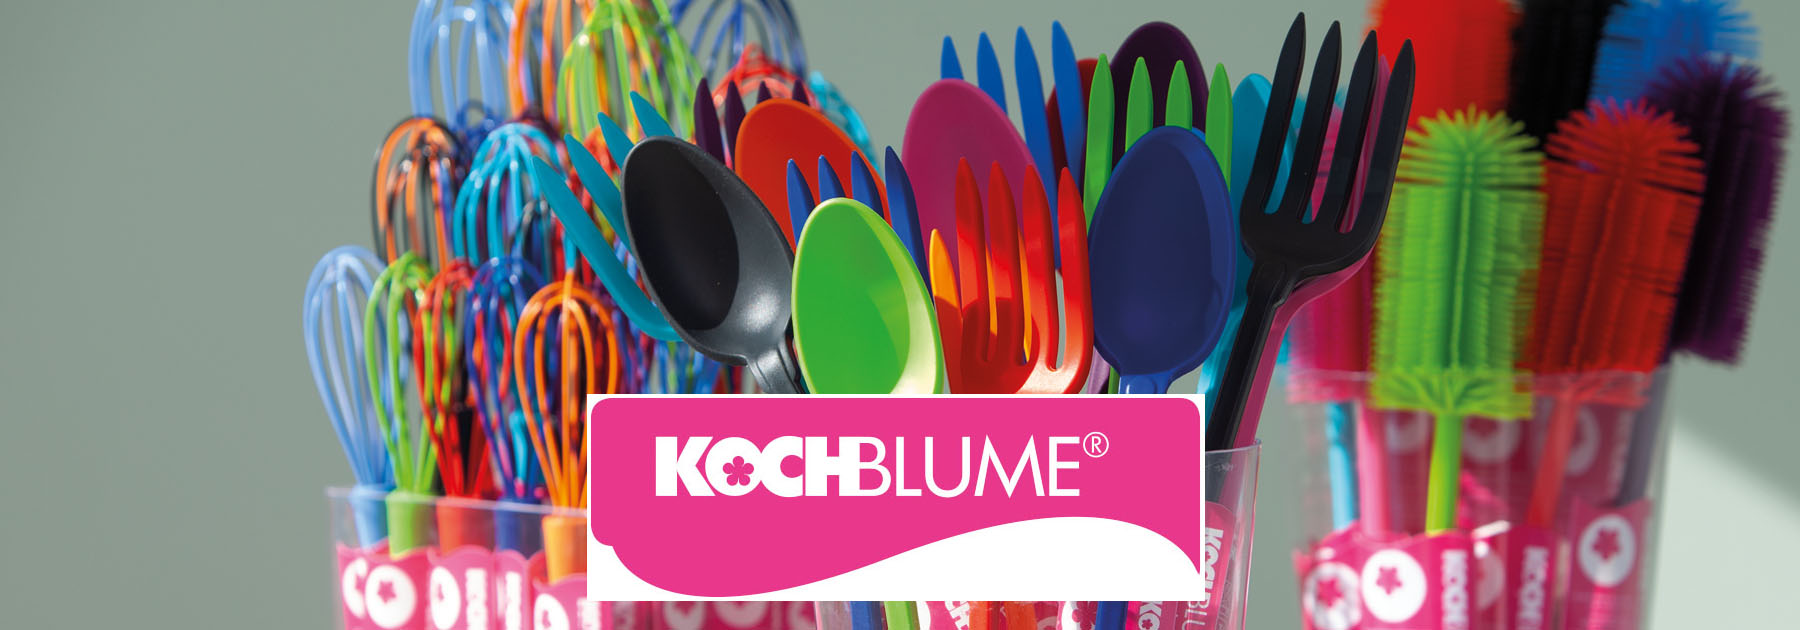 kochblume, new, range, silicone, tools, cookware, cleaning